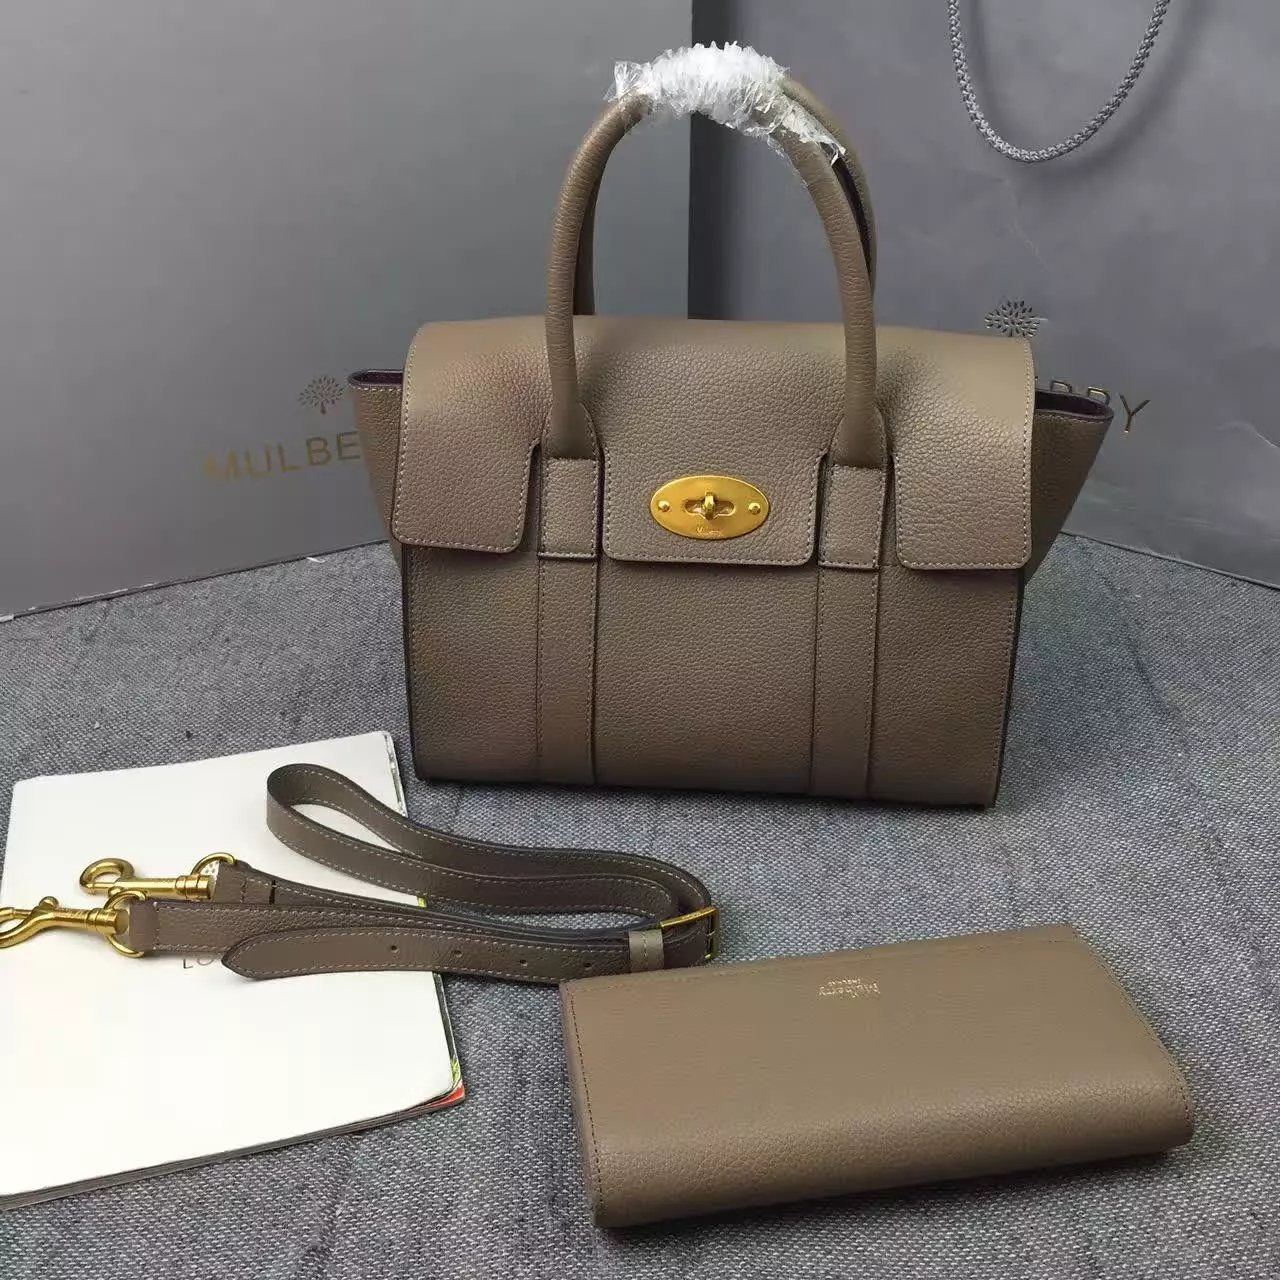 New Edition 2017 Mulberry Handbags Collection Outlet Uk Small Bayswater Dune Classic Grain